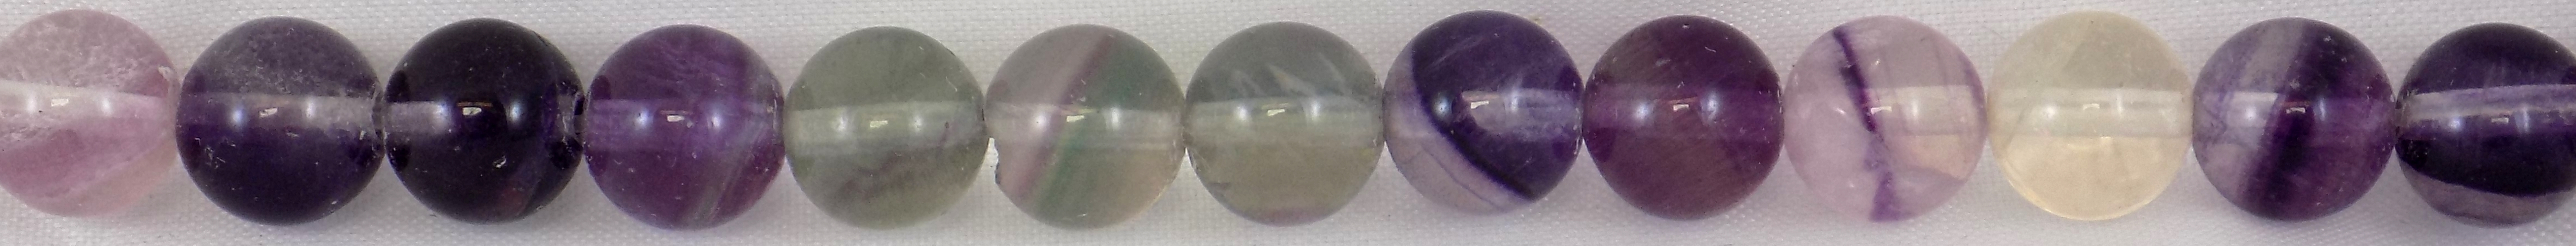 purple fluorite round beads 8mm wholesale gemstones